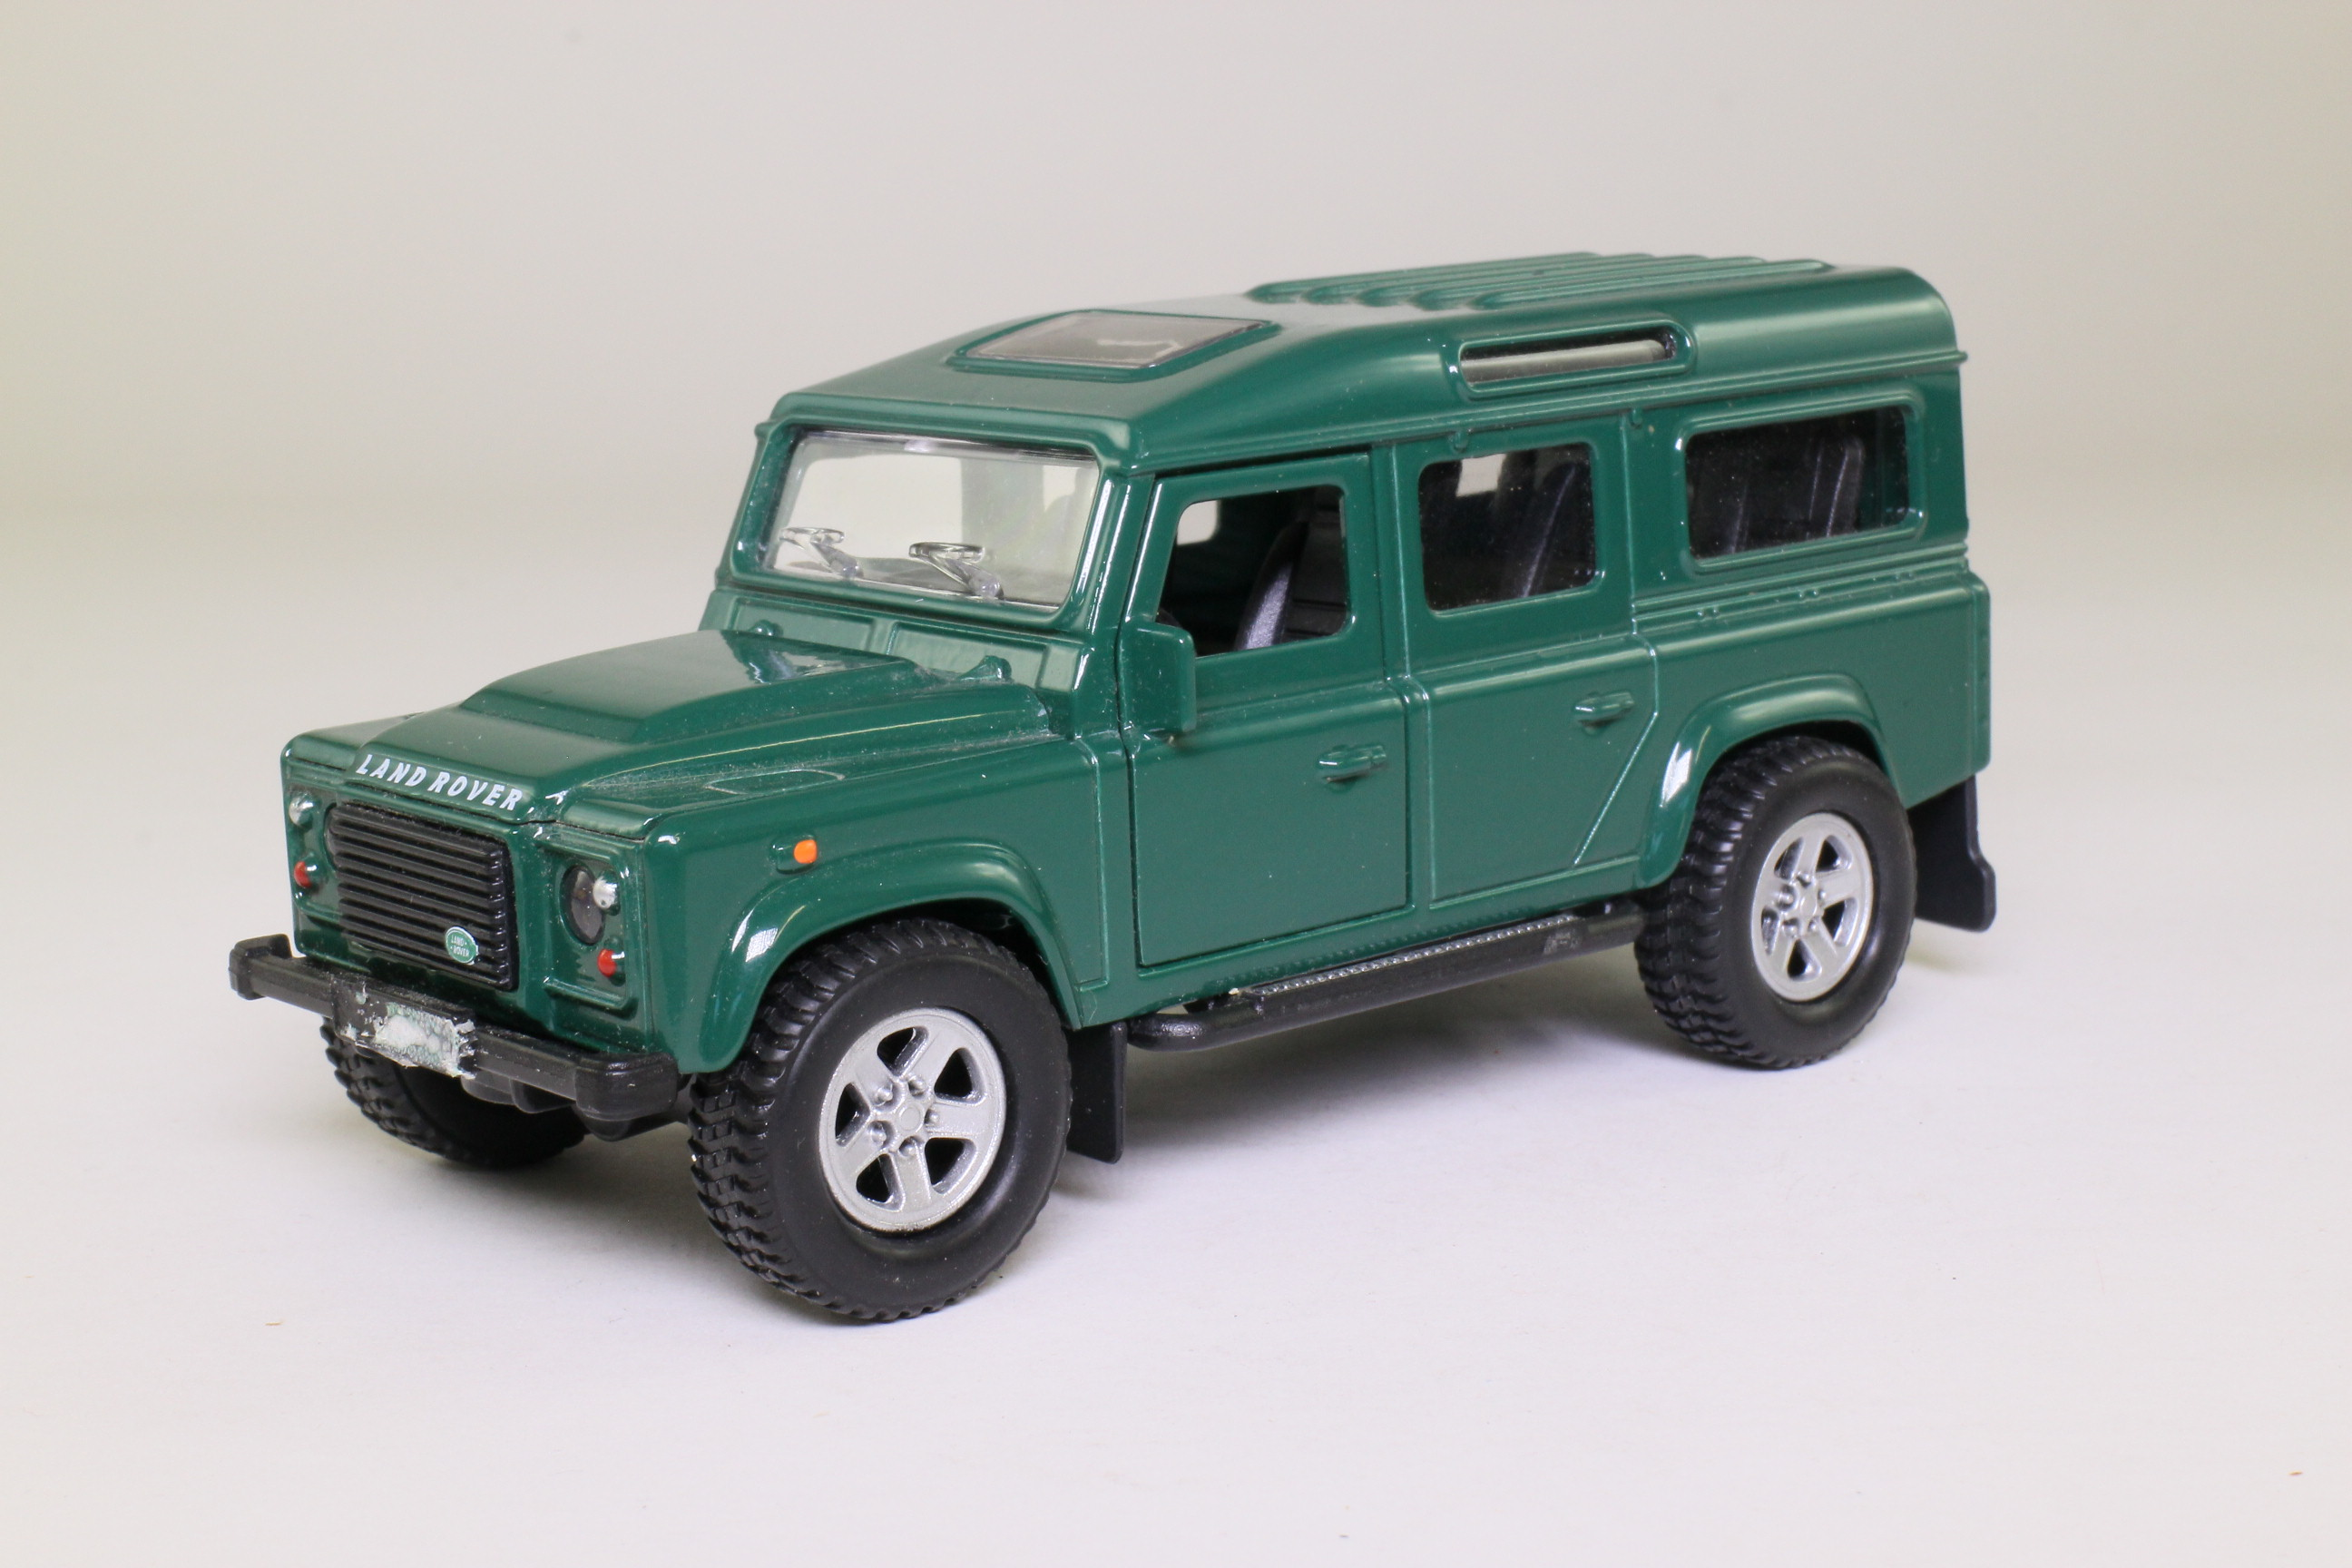 teamsters land rover defender 110 station wagon dark green excellent boxed ebay. Black Bedroom Furniture Sets. Home Design Ideas